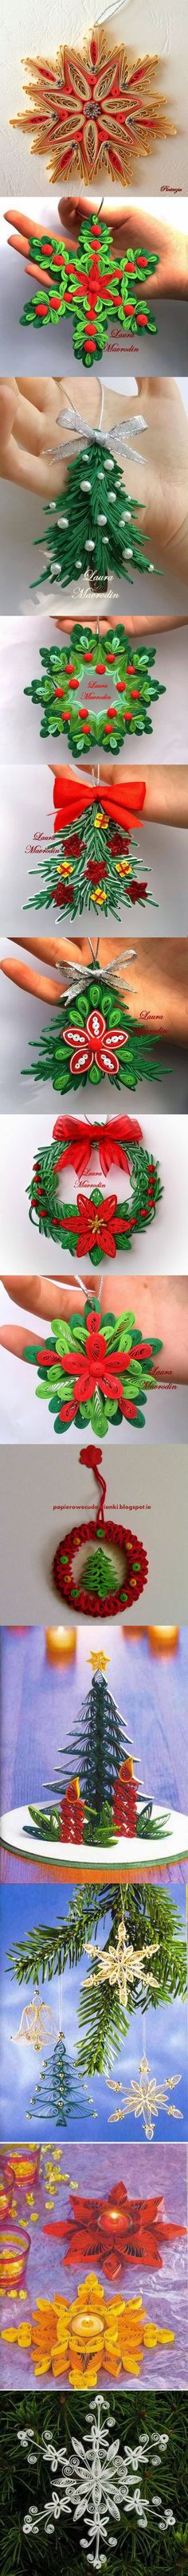 Quilling Art for Christmas